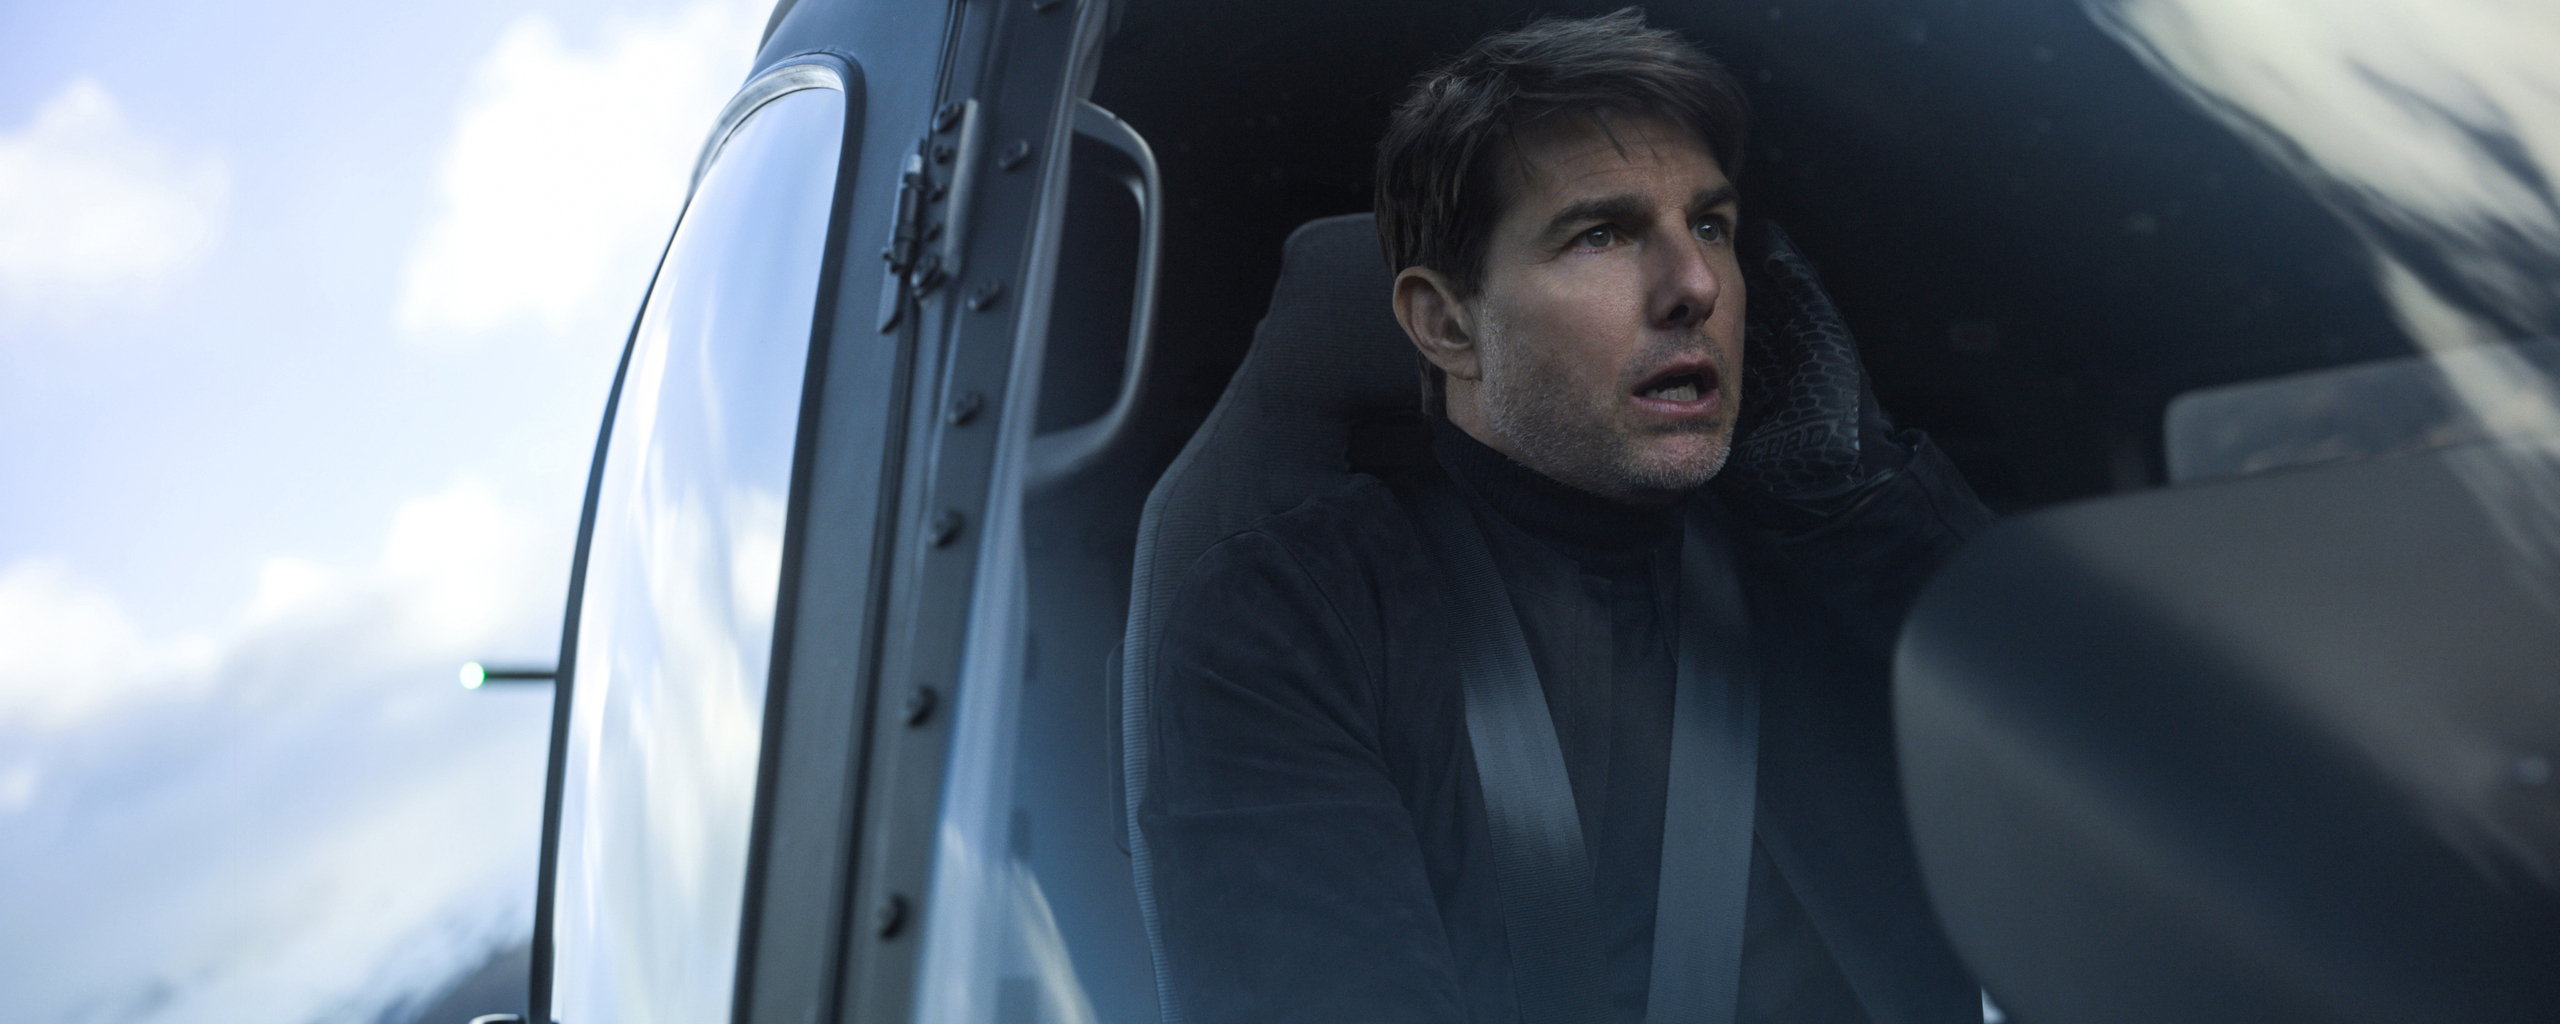 tom-cruise-flying-helicopter-mission-impossible-fallout-4k-h3.jpg